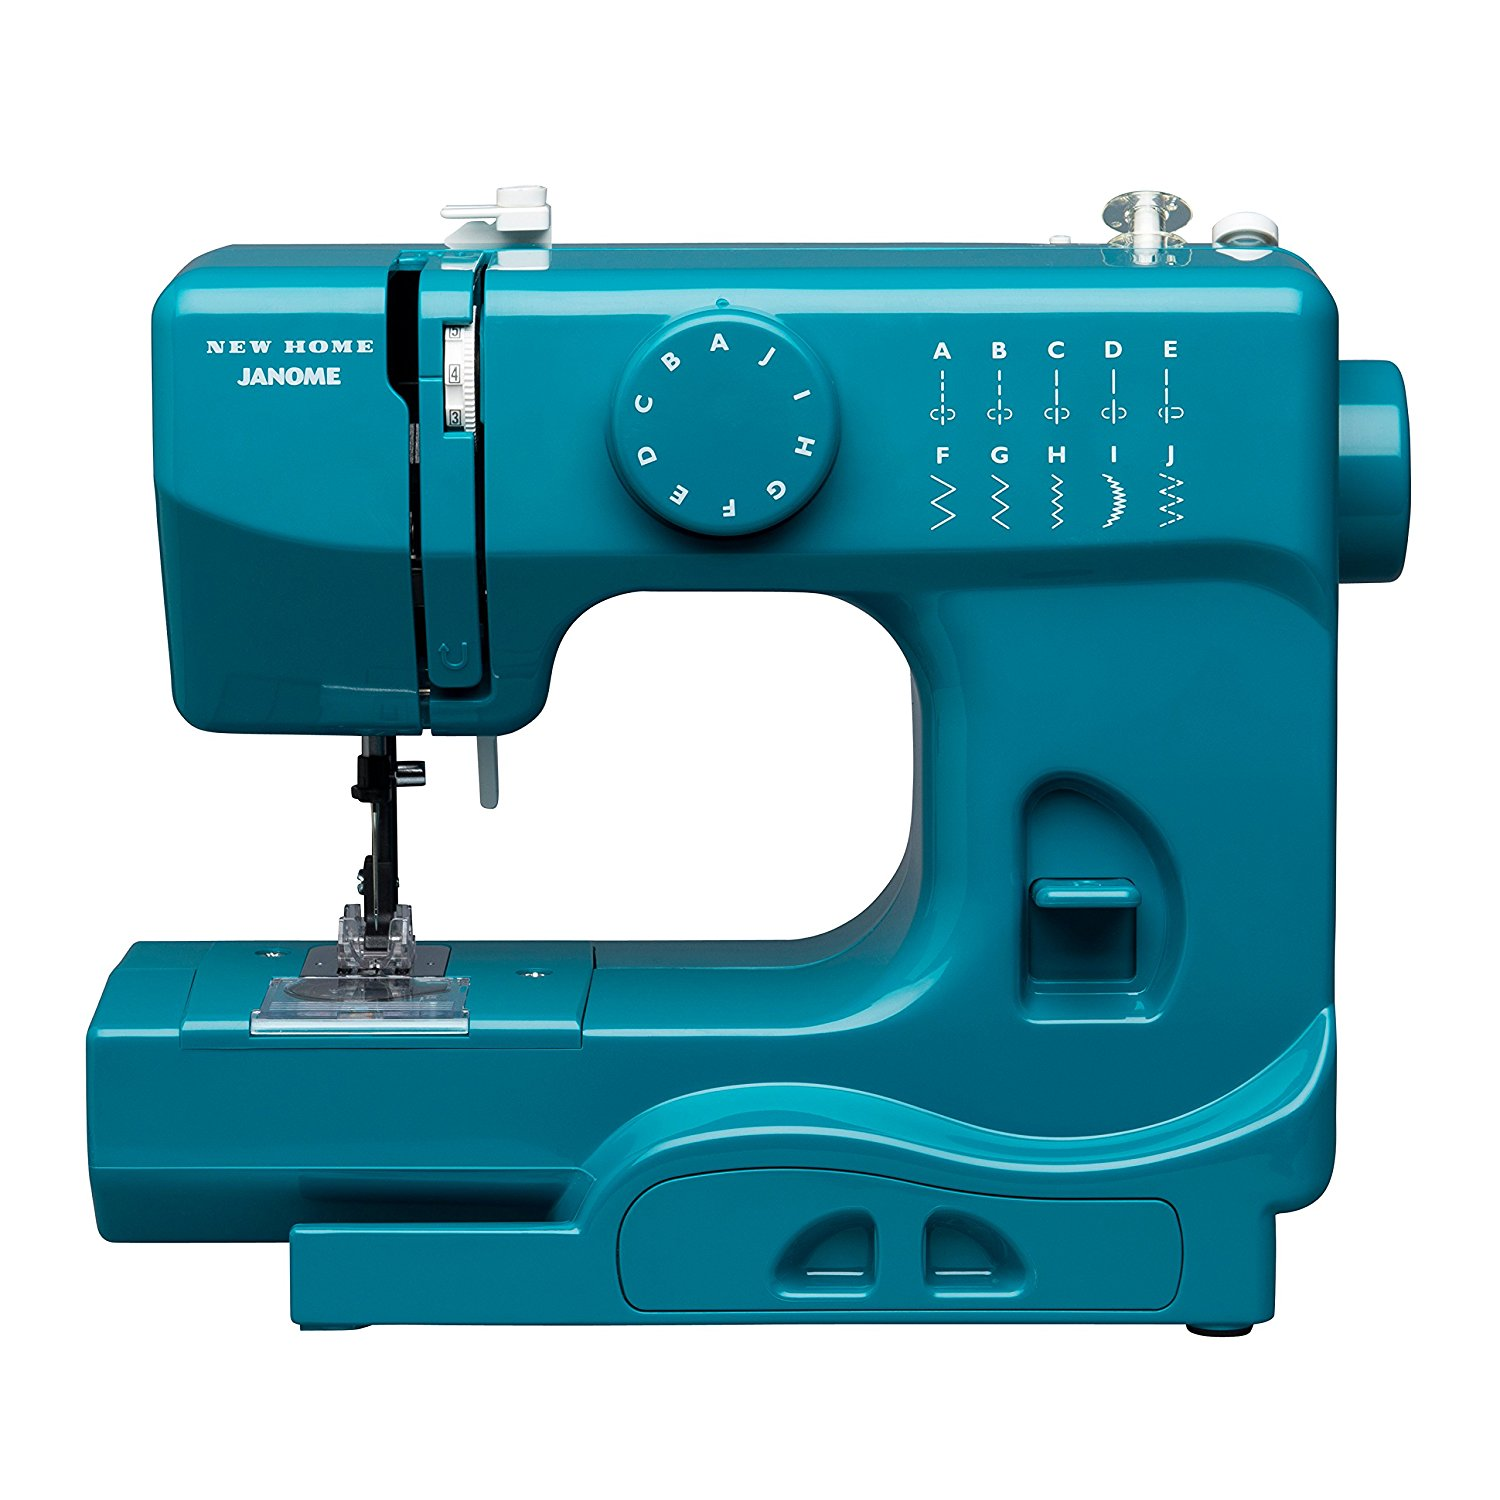 Janome Marine Magic - Sewing Machine Directory